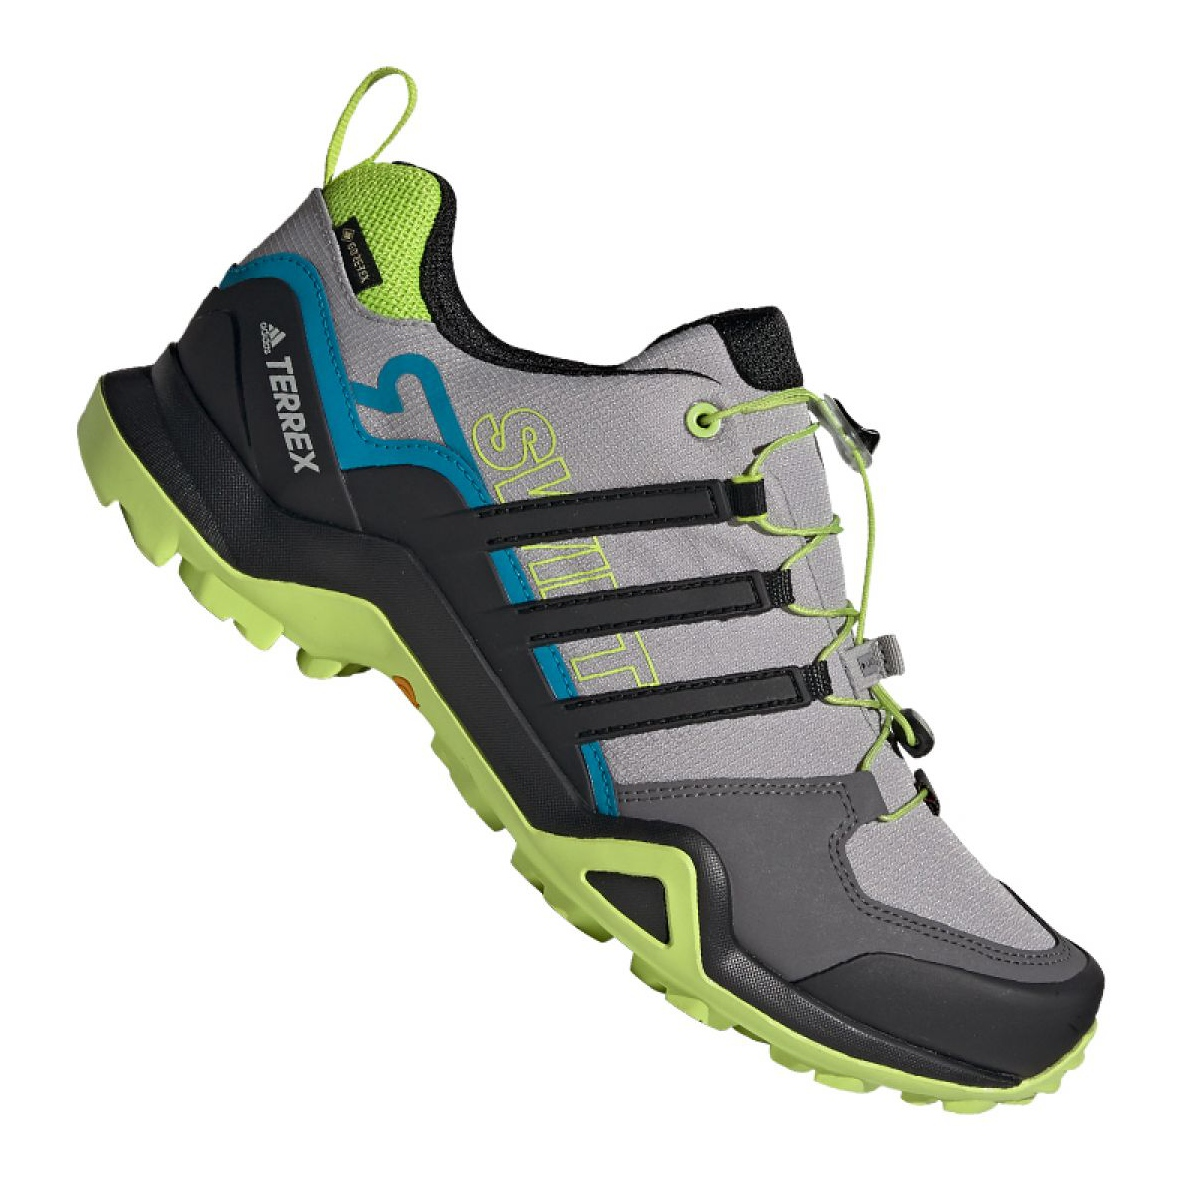 Details about Adidas Terrex Swift R2 Gtx M EG4777 shoes grey